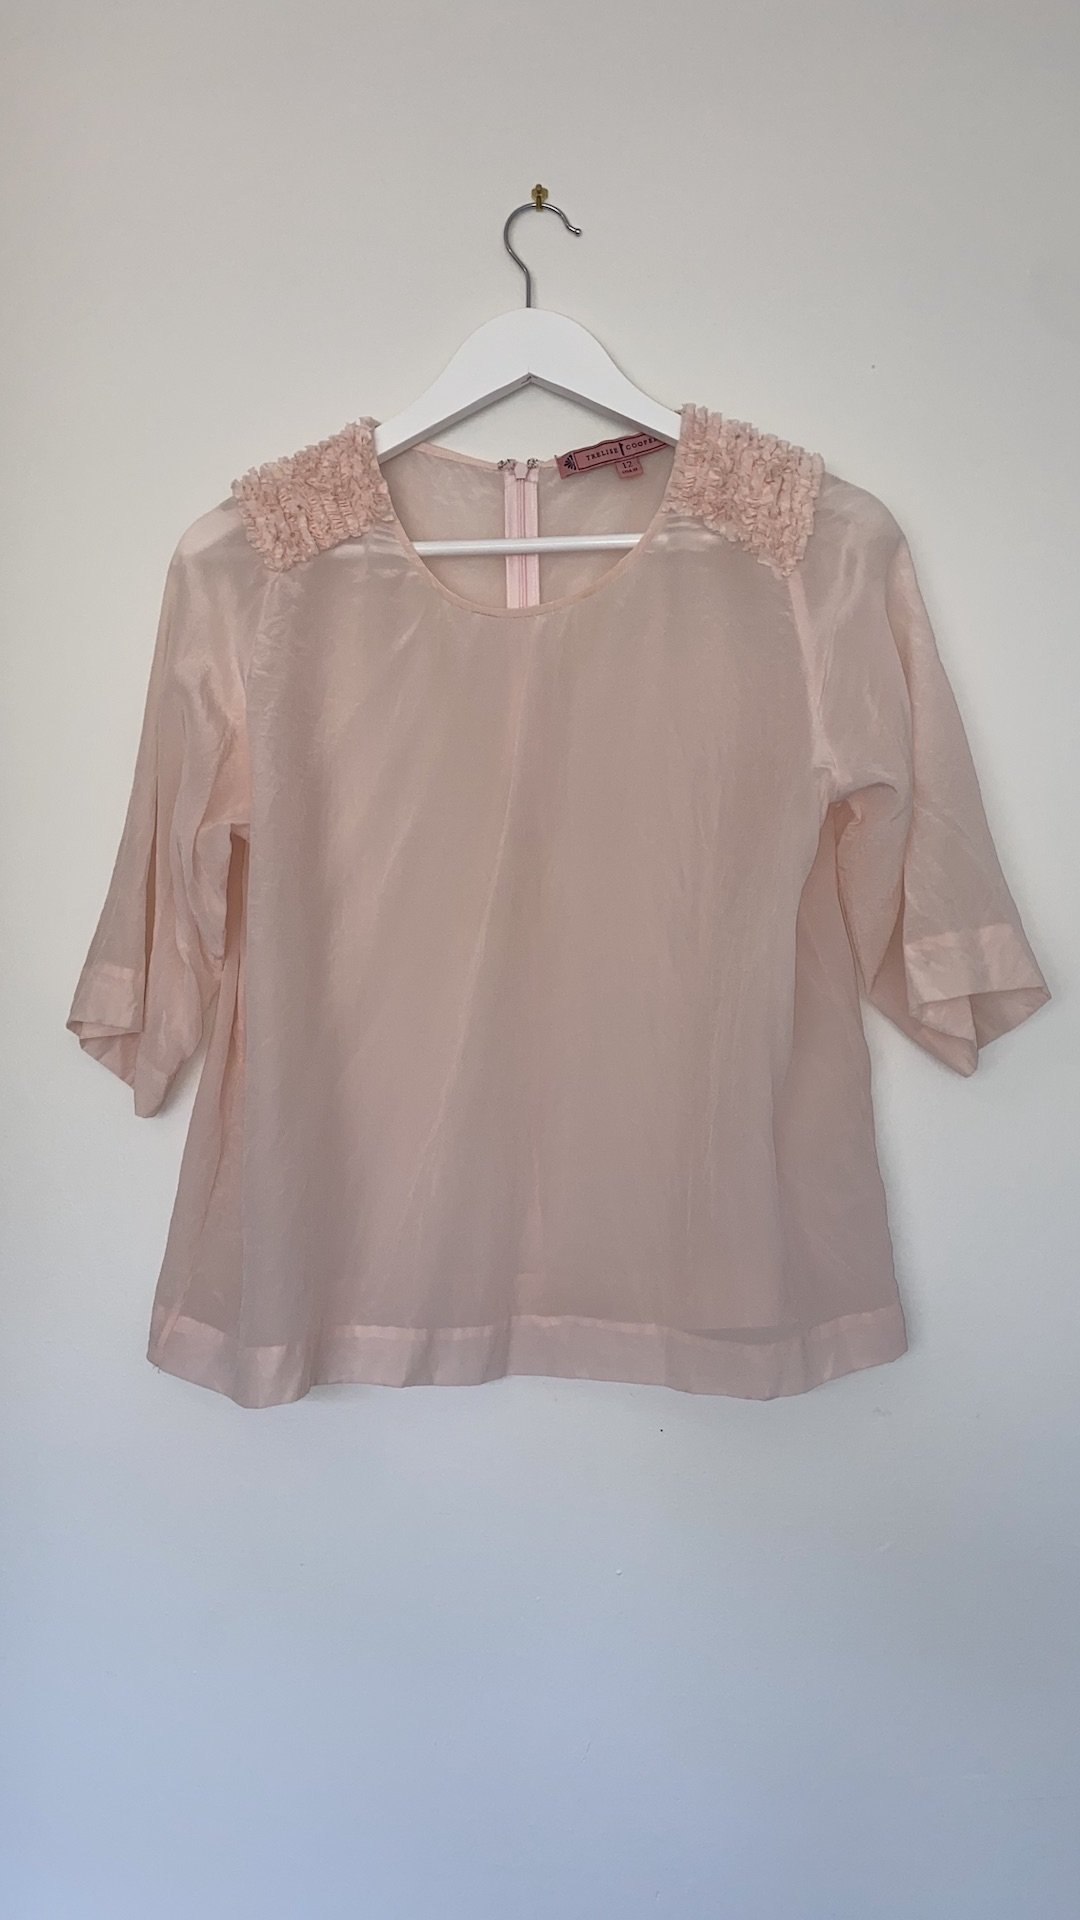 TRELISE COOPER Top - Size 12